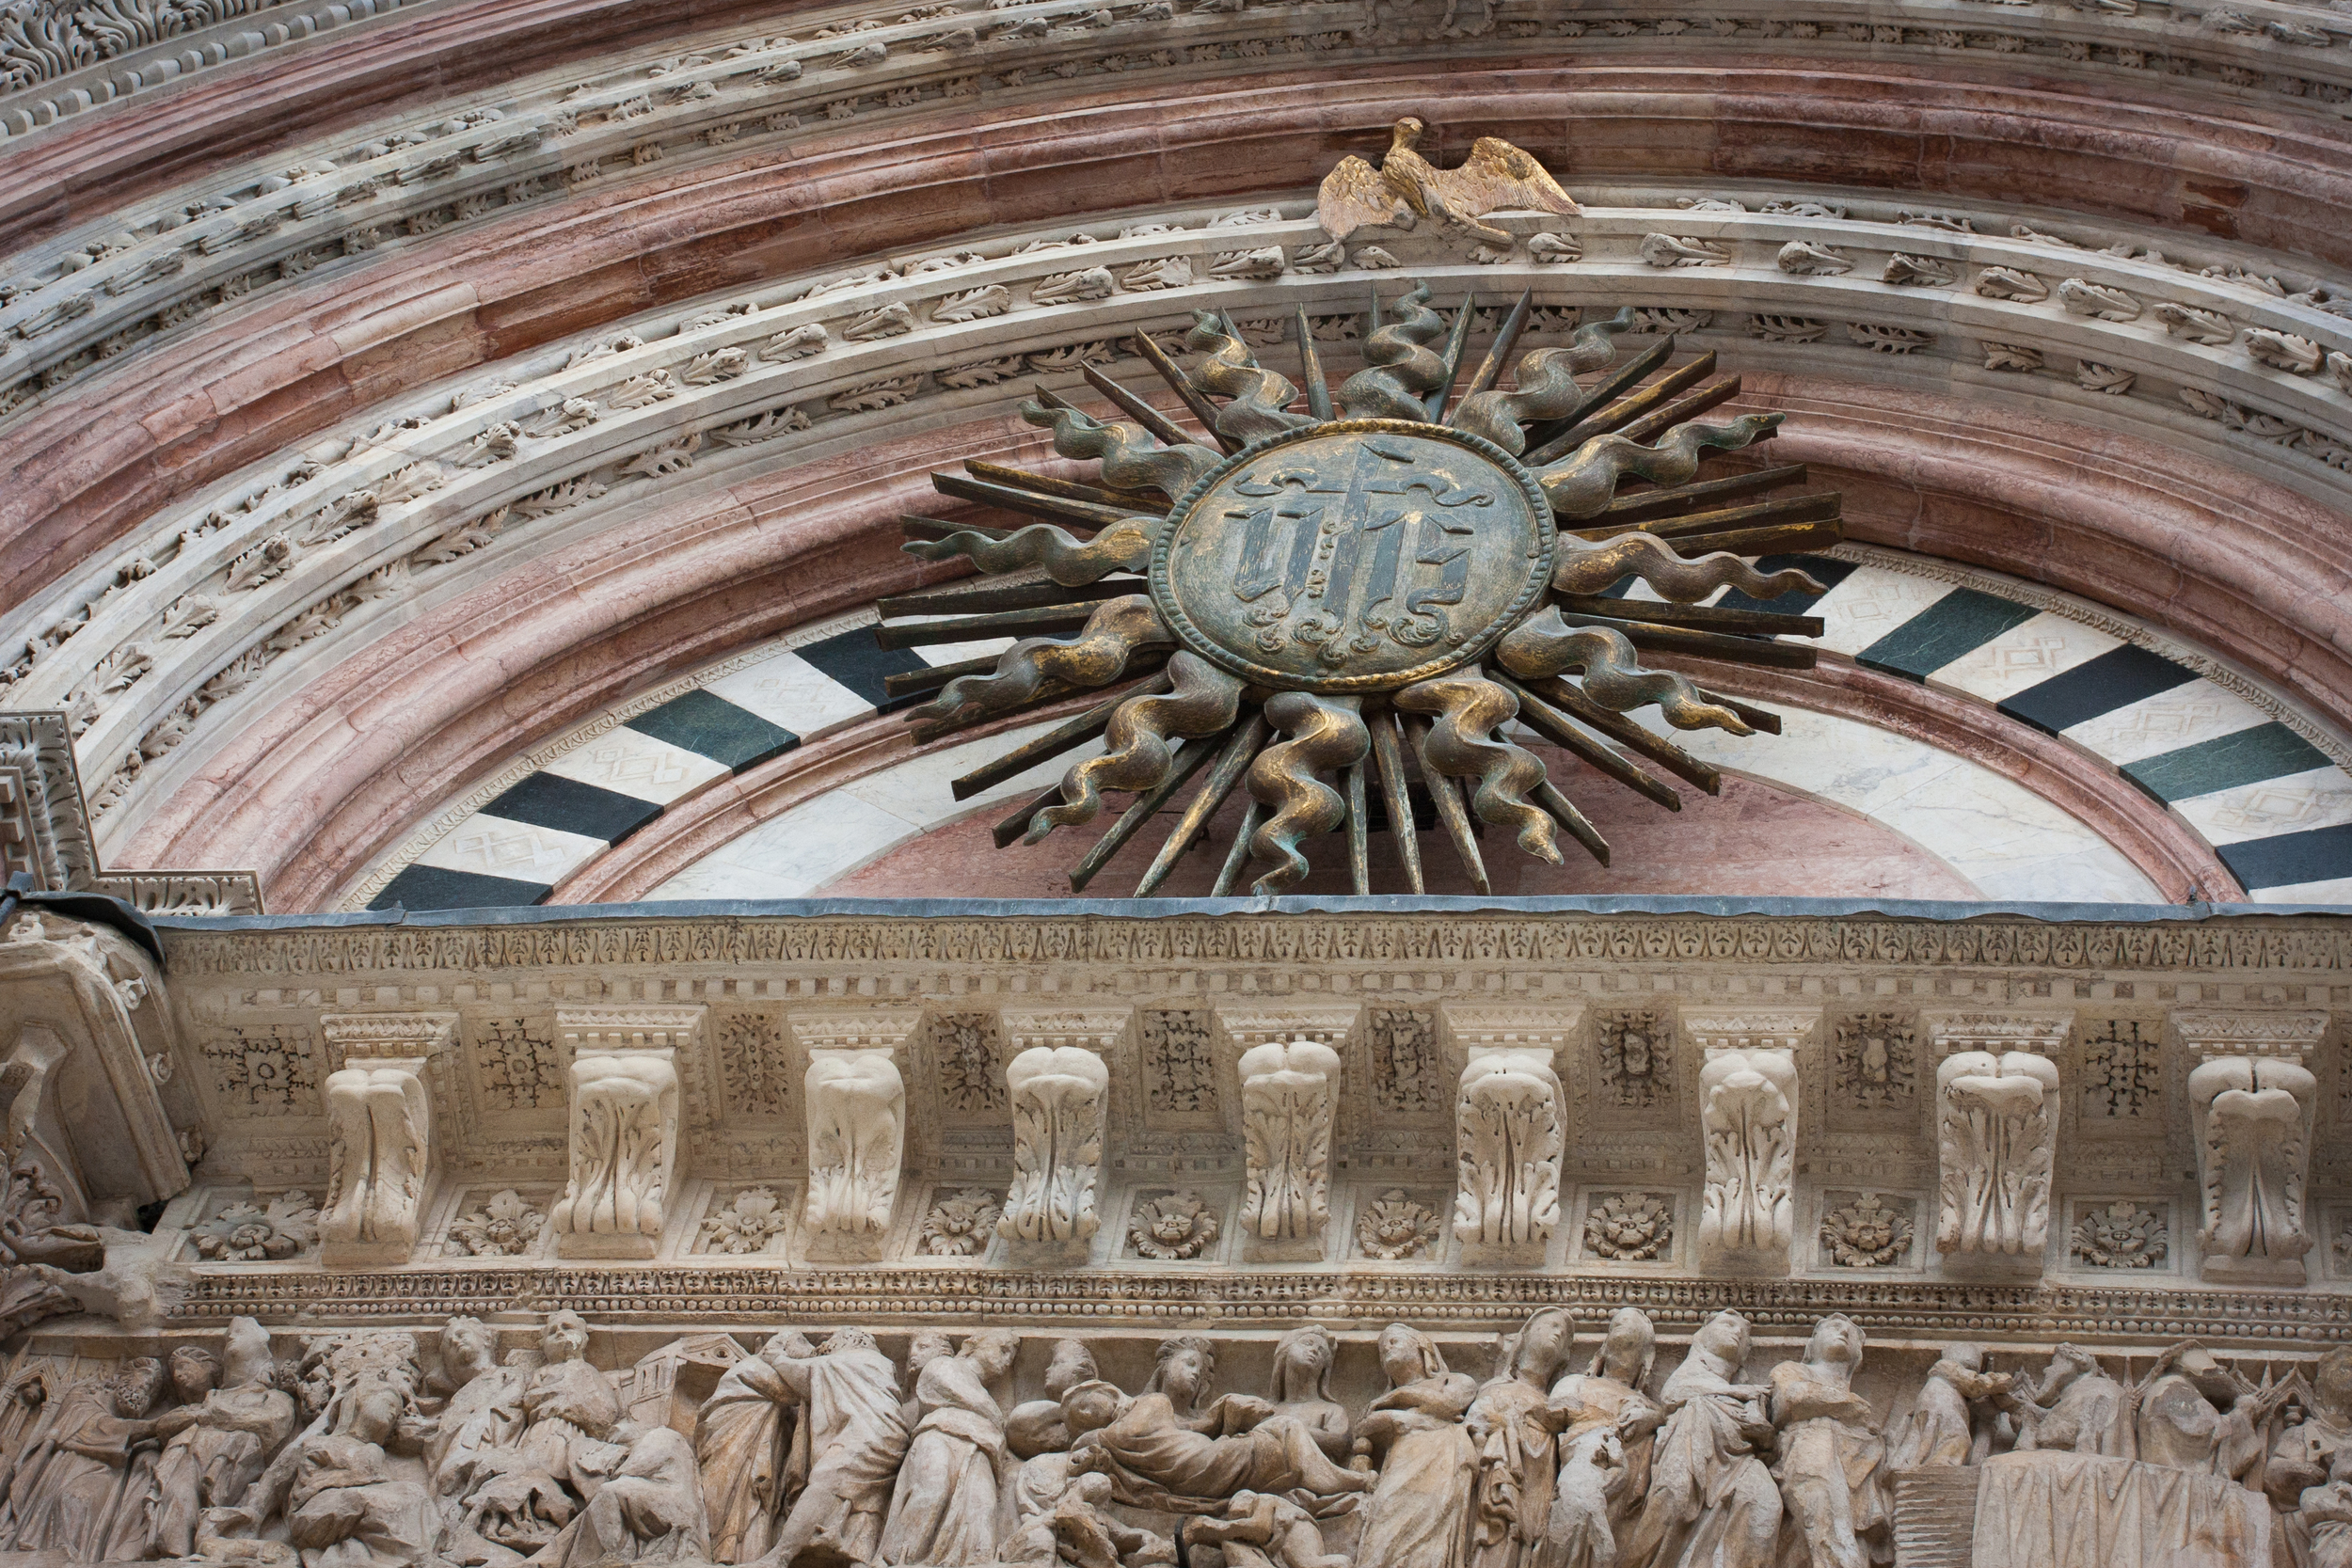 Every inch of the cathedral holds spectacular detail.